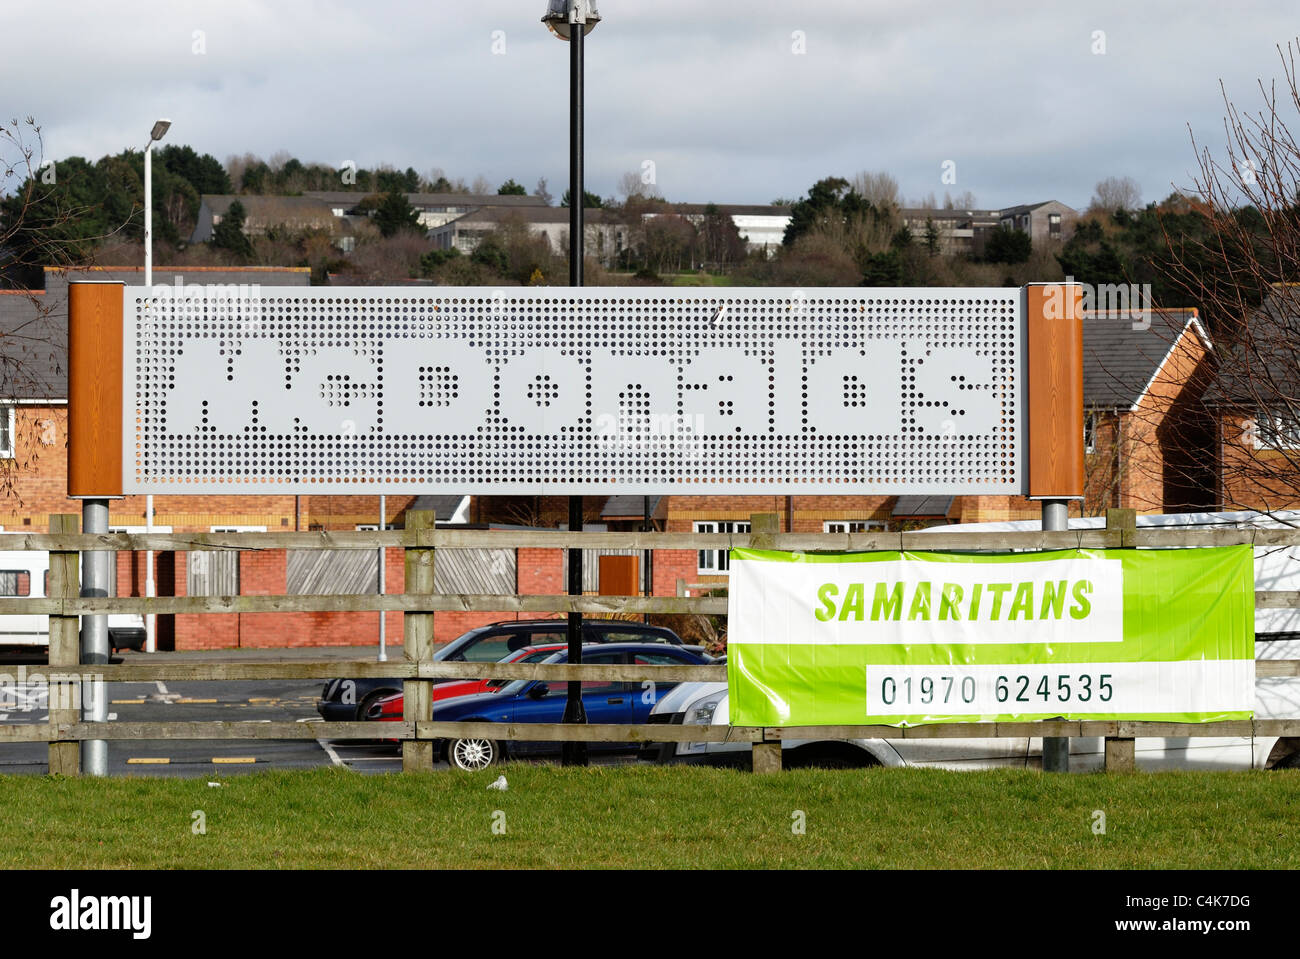 Signs for McDonalds fast food restaurant and the Samaritans helpline adjacent, Aberystwyth, Wales Stock Photo